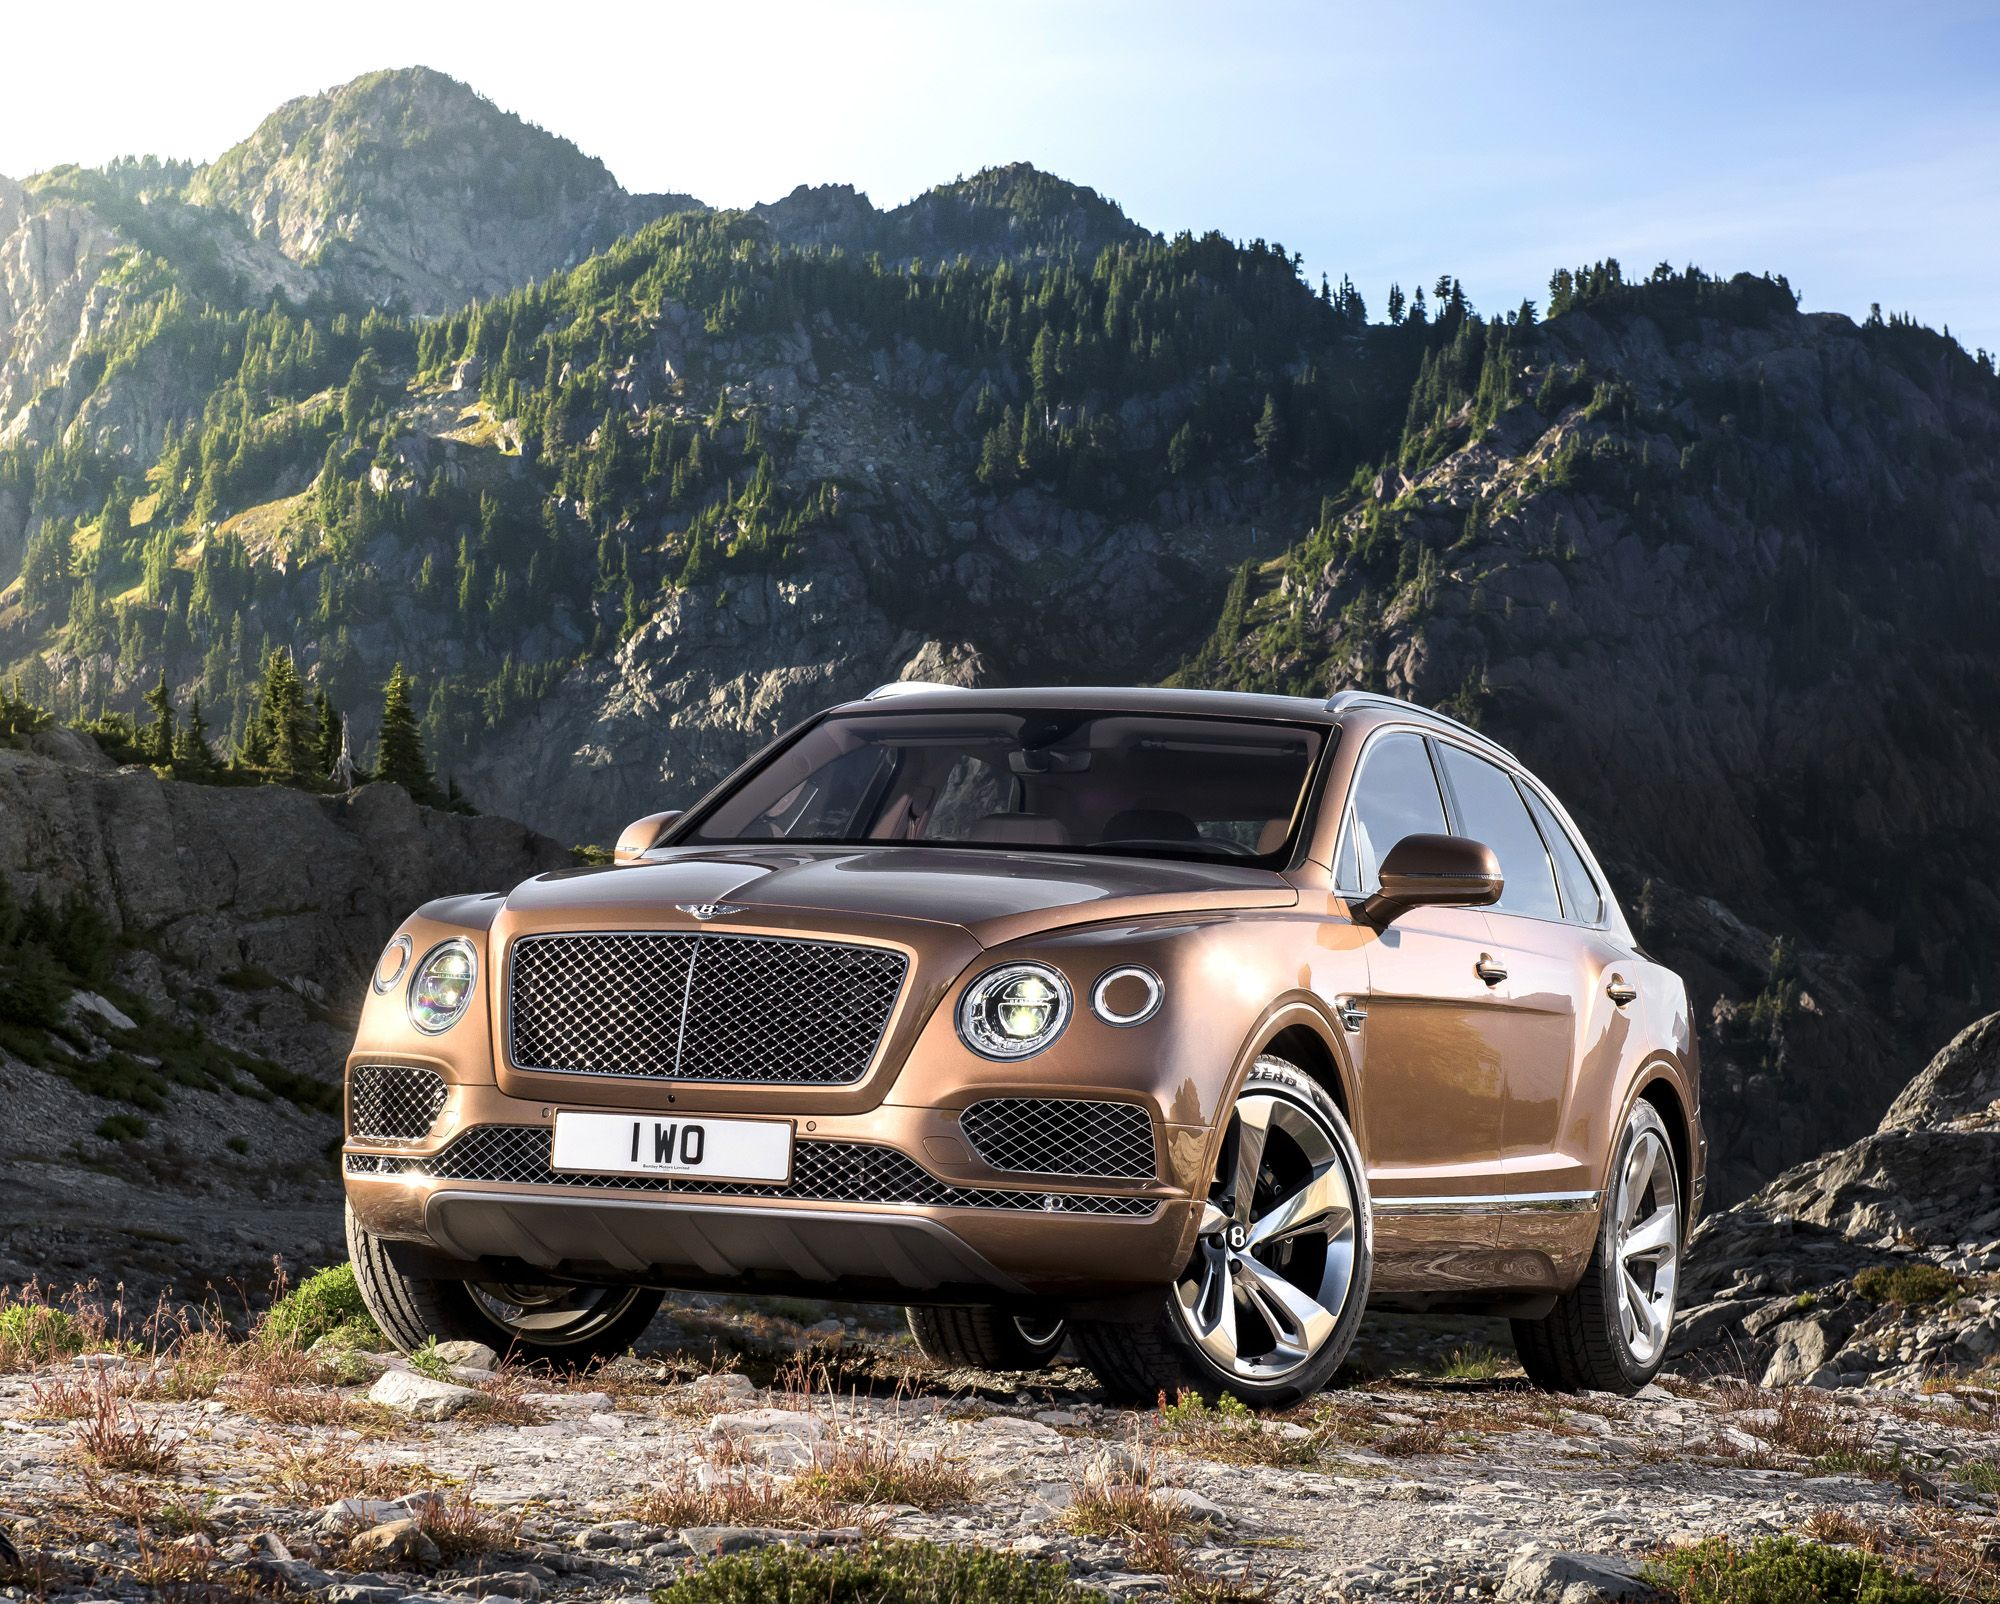 meet the fastest suv in the world the 300k bentley bentayga. Black Bedroom Furniture Sets. Home Design Ideas